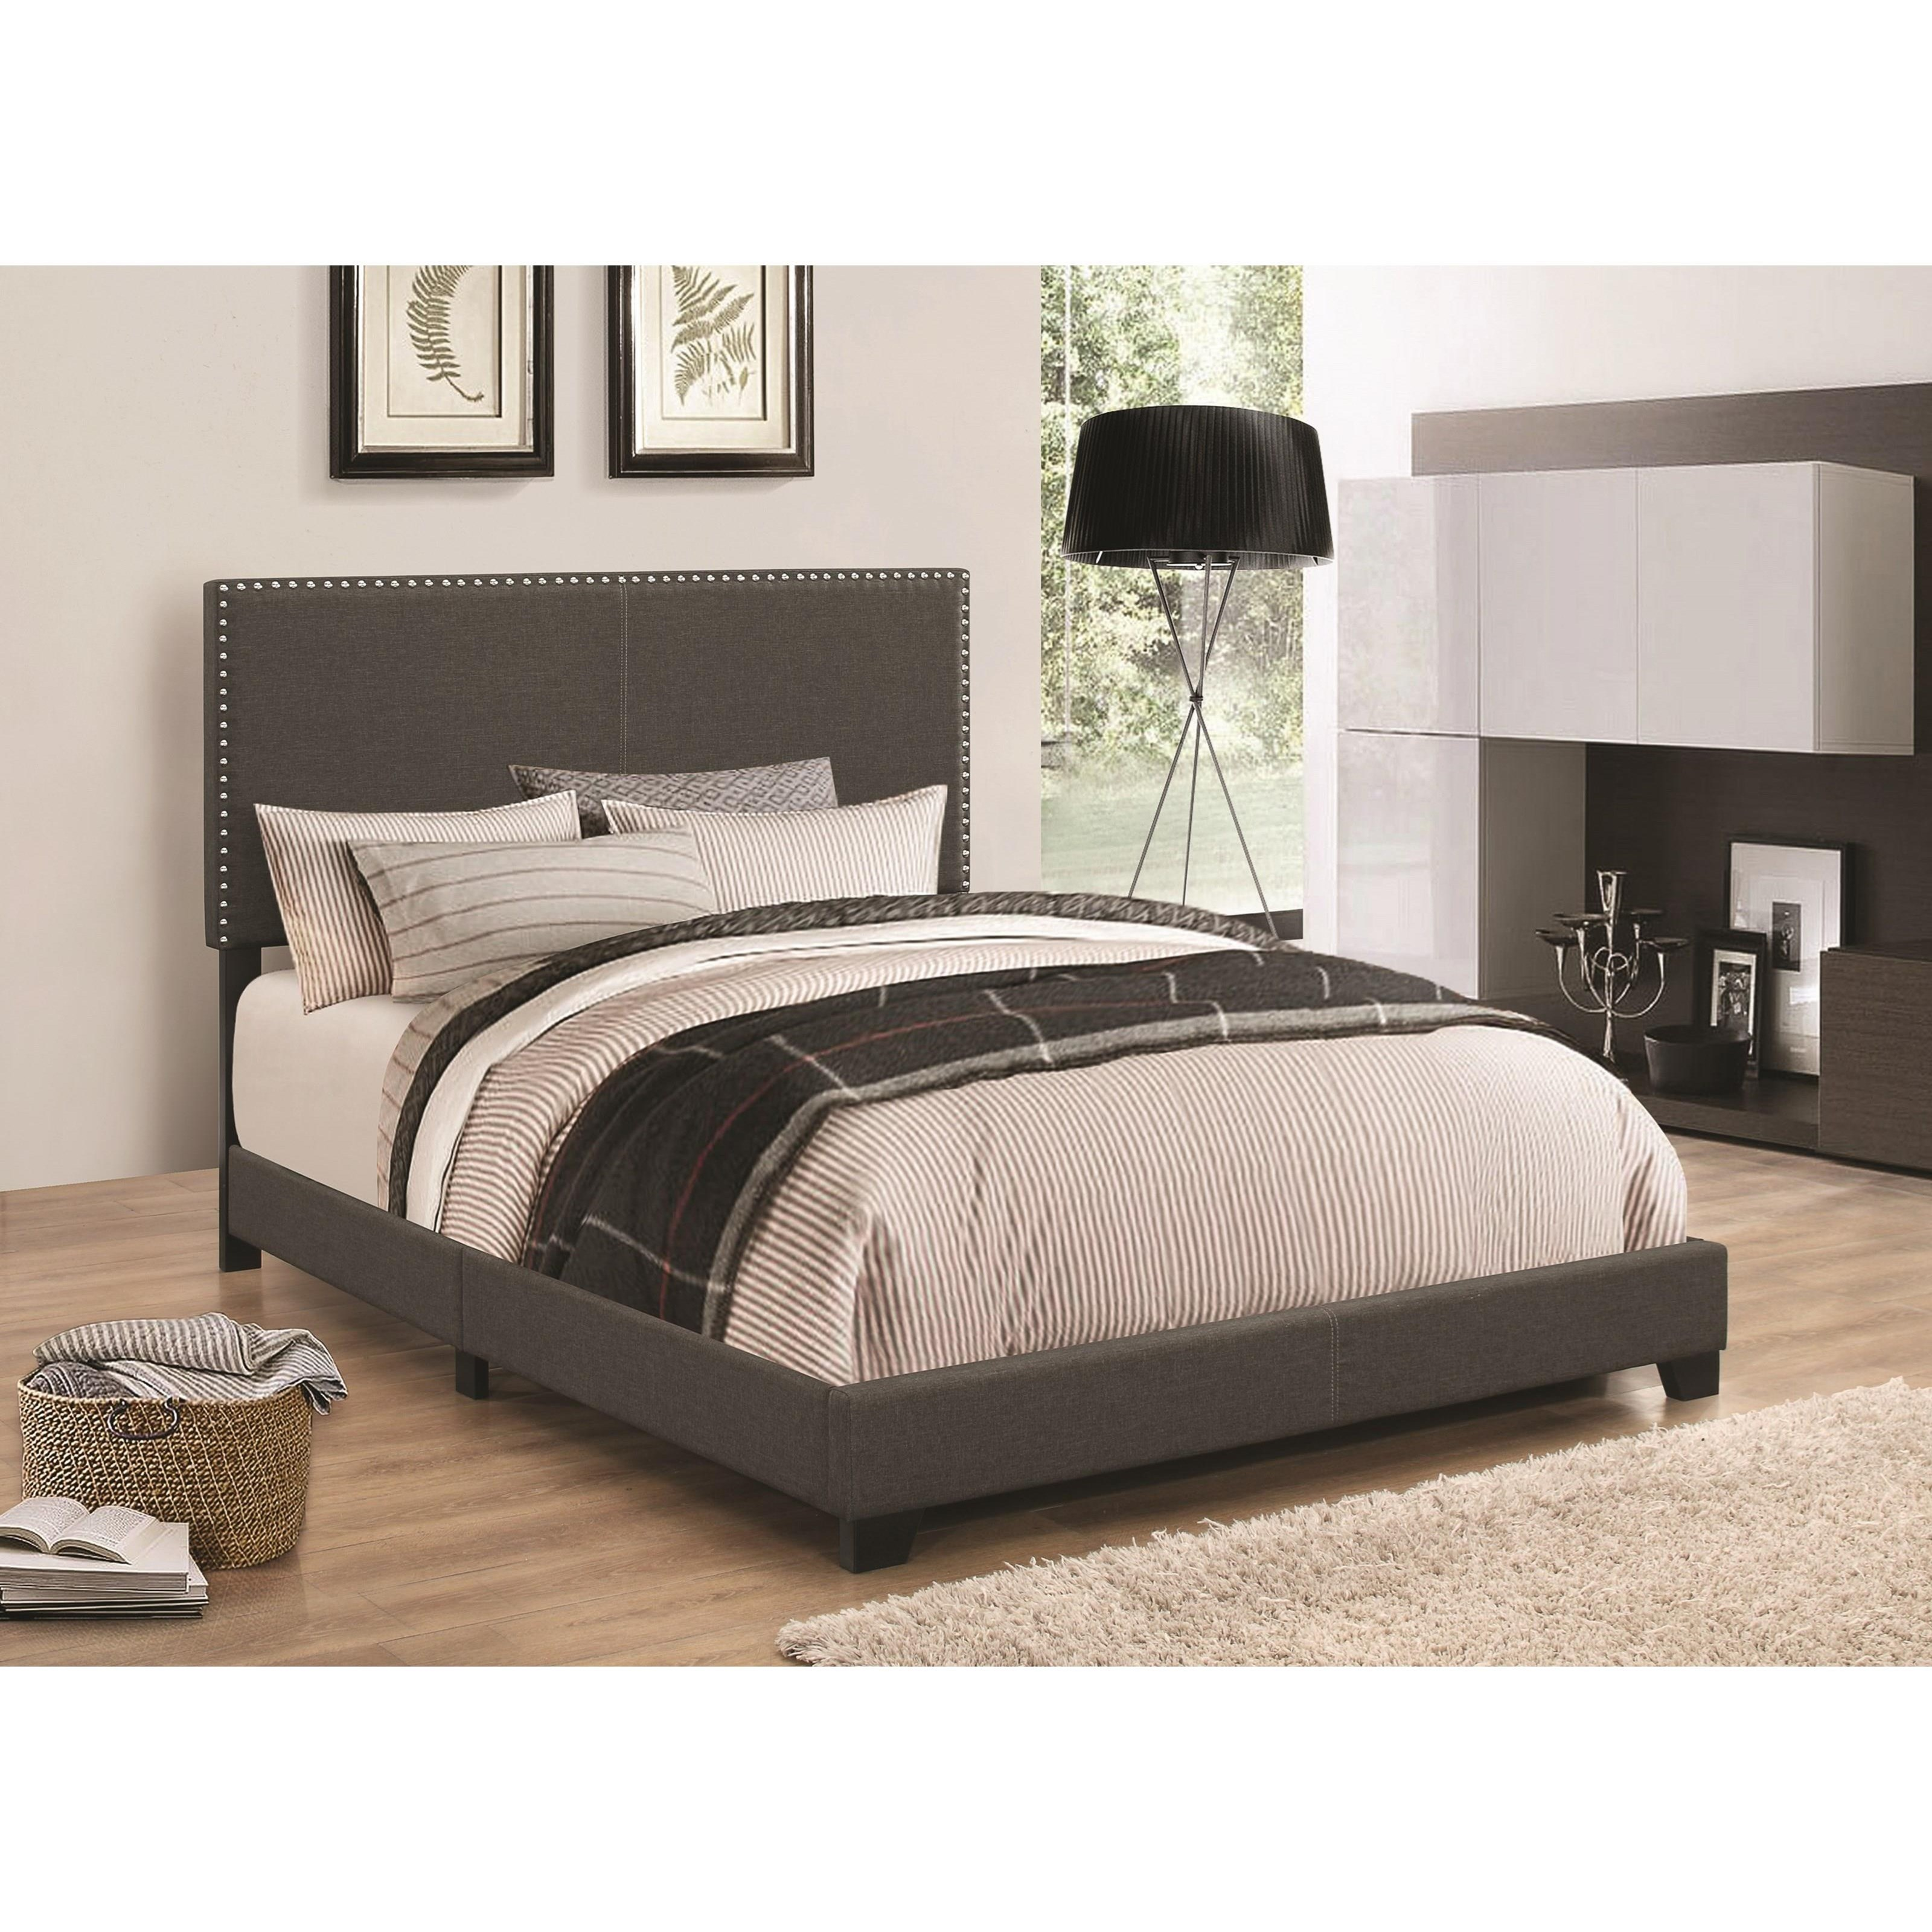 Coaster Upholstered Beds Upholstered California King Bed